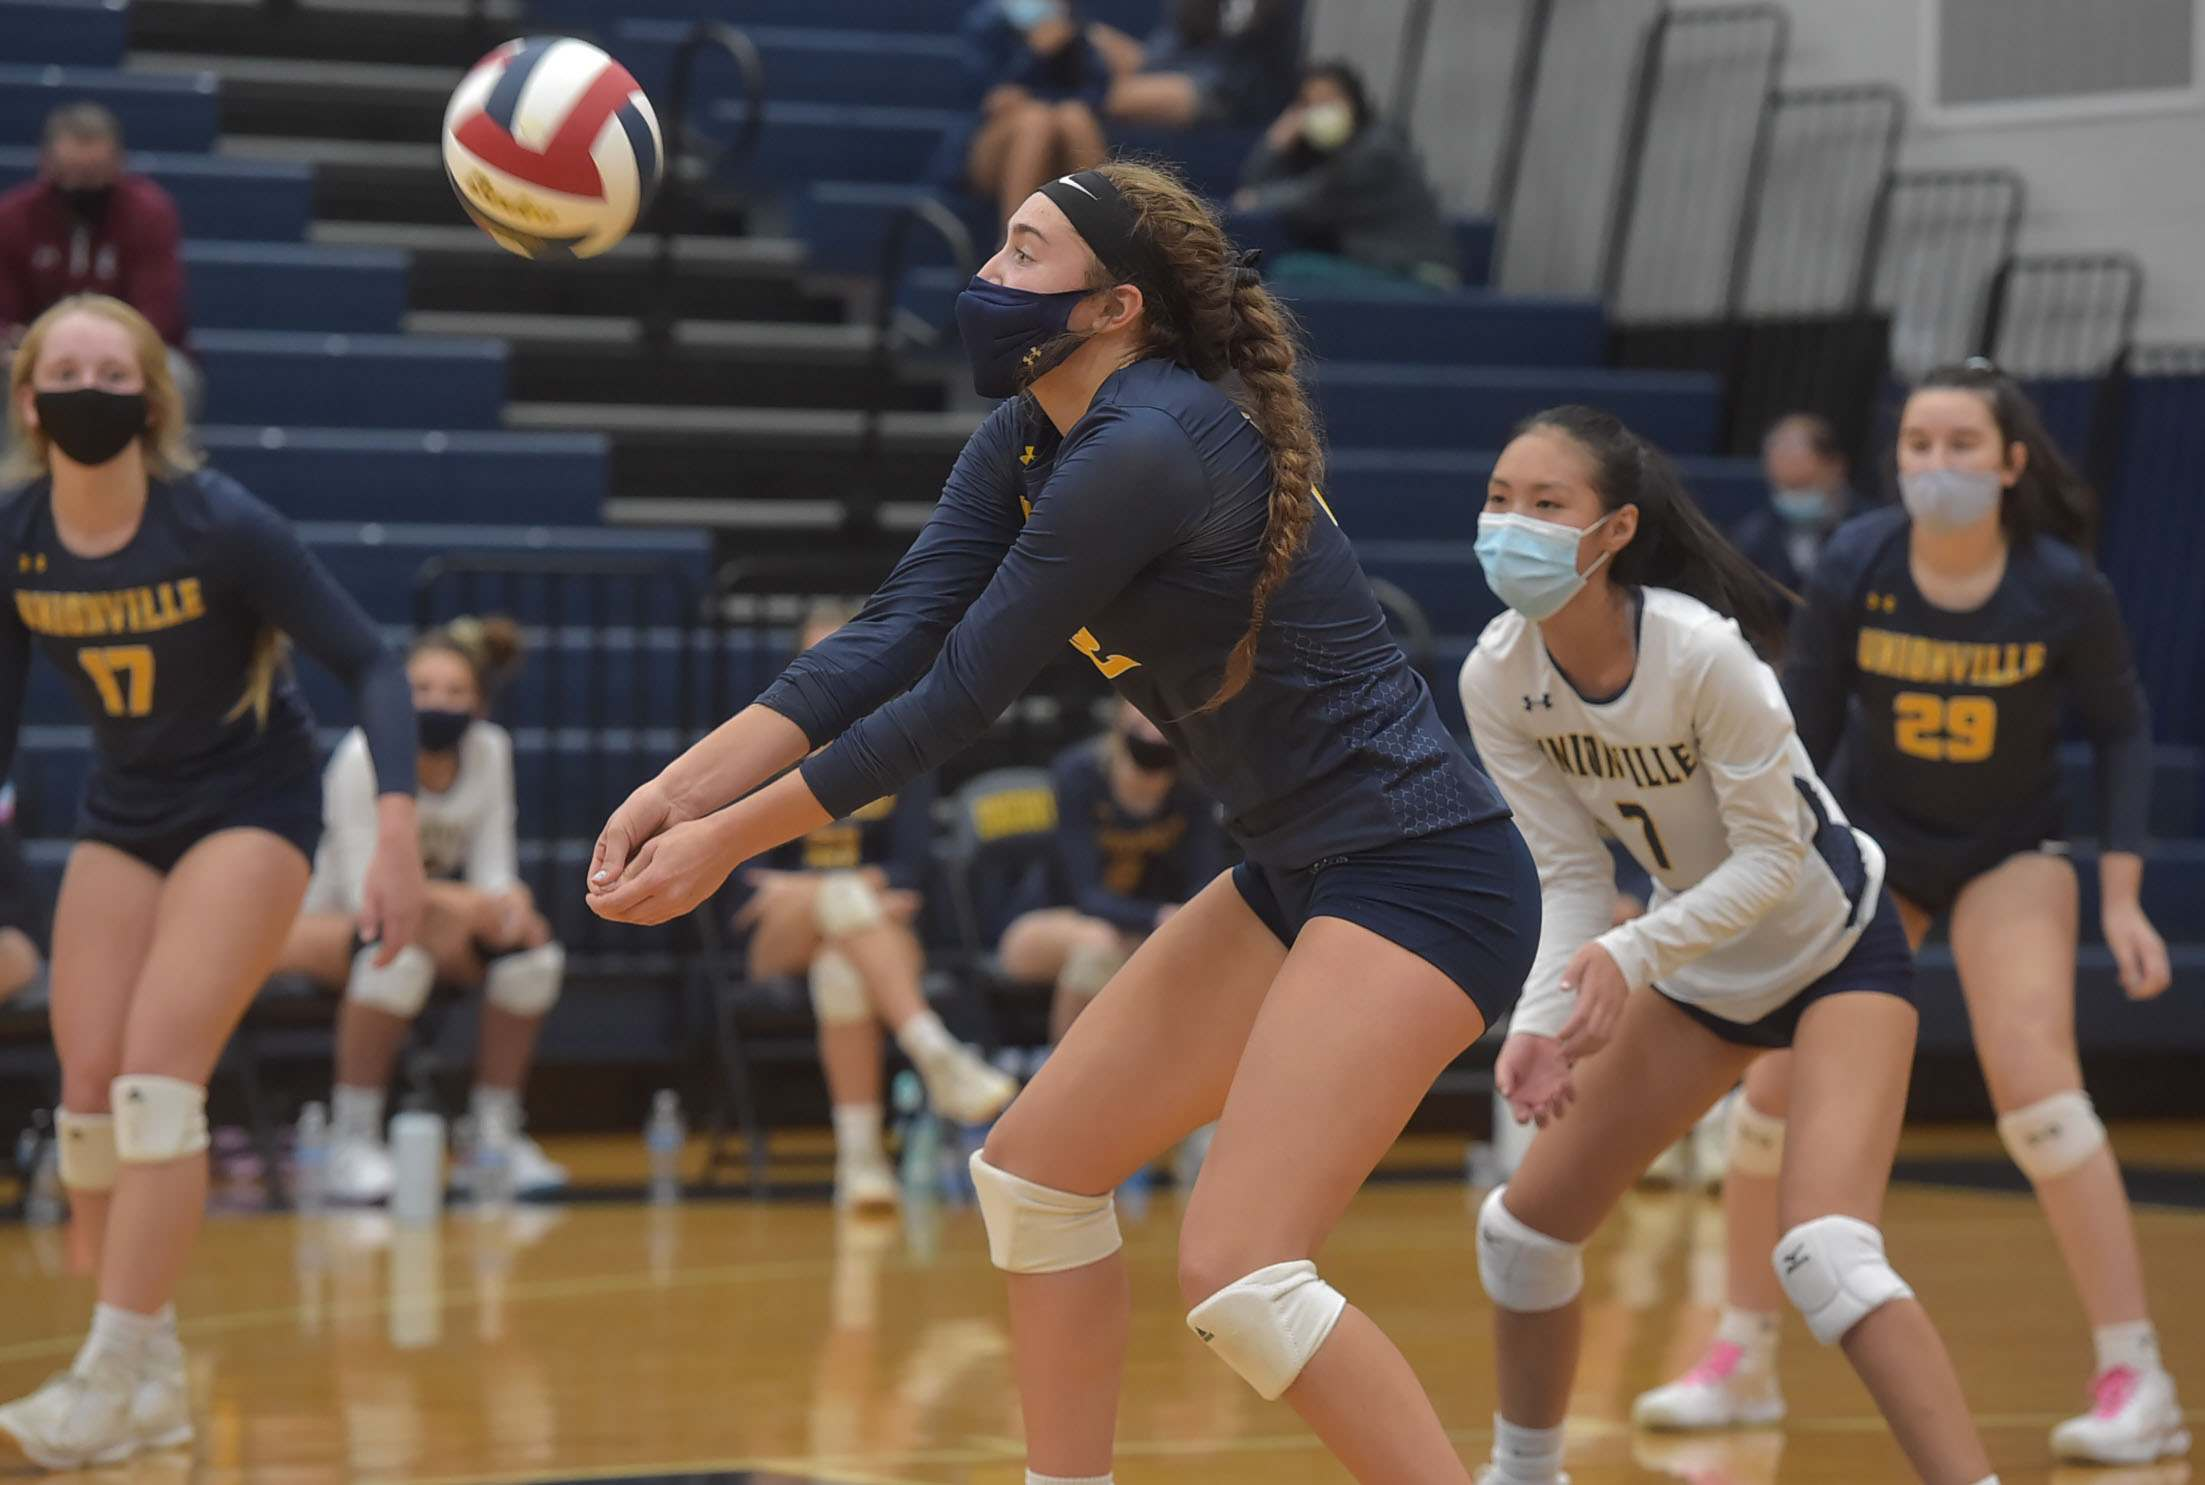 Unionville's (12) Sophie Brenner handles a ball in the decisive fourt game against Bishop Shanahan Wednesday afternoon.